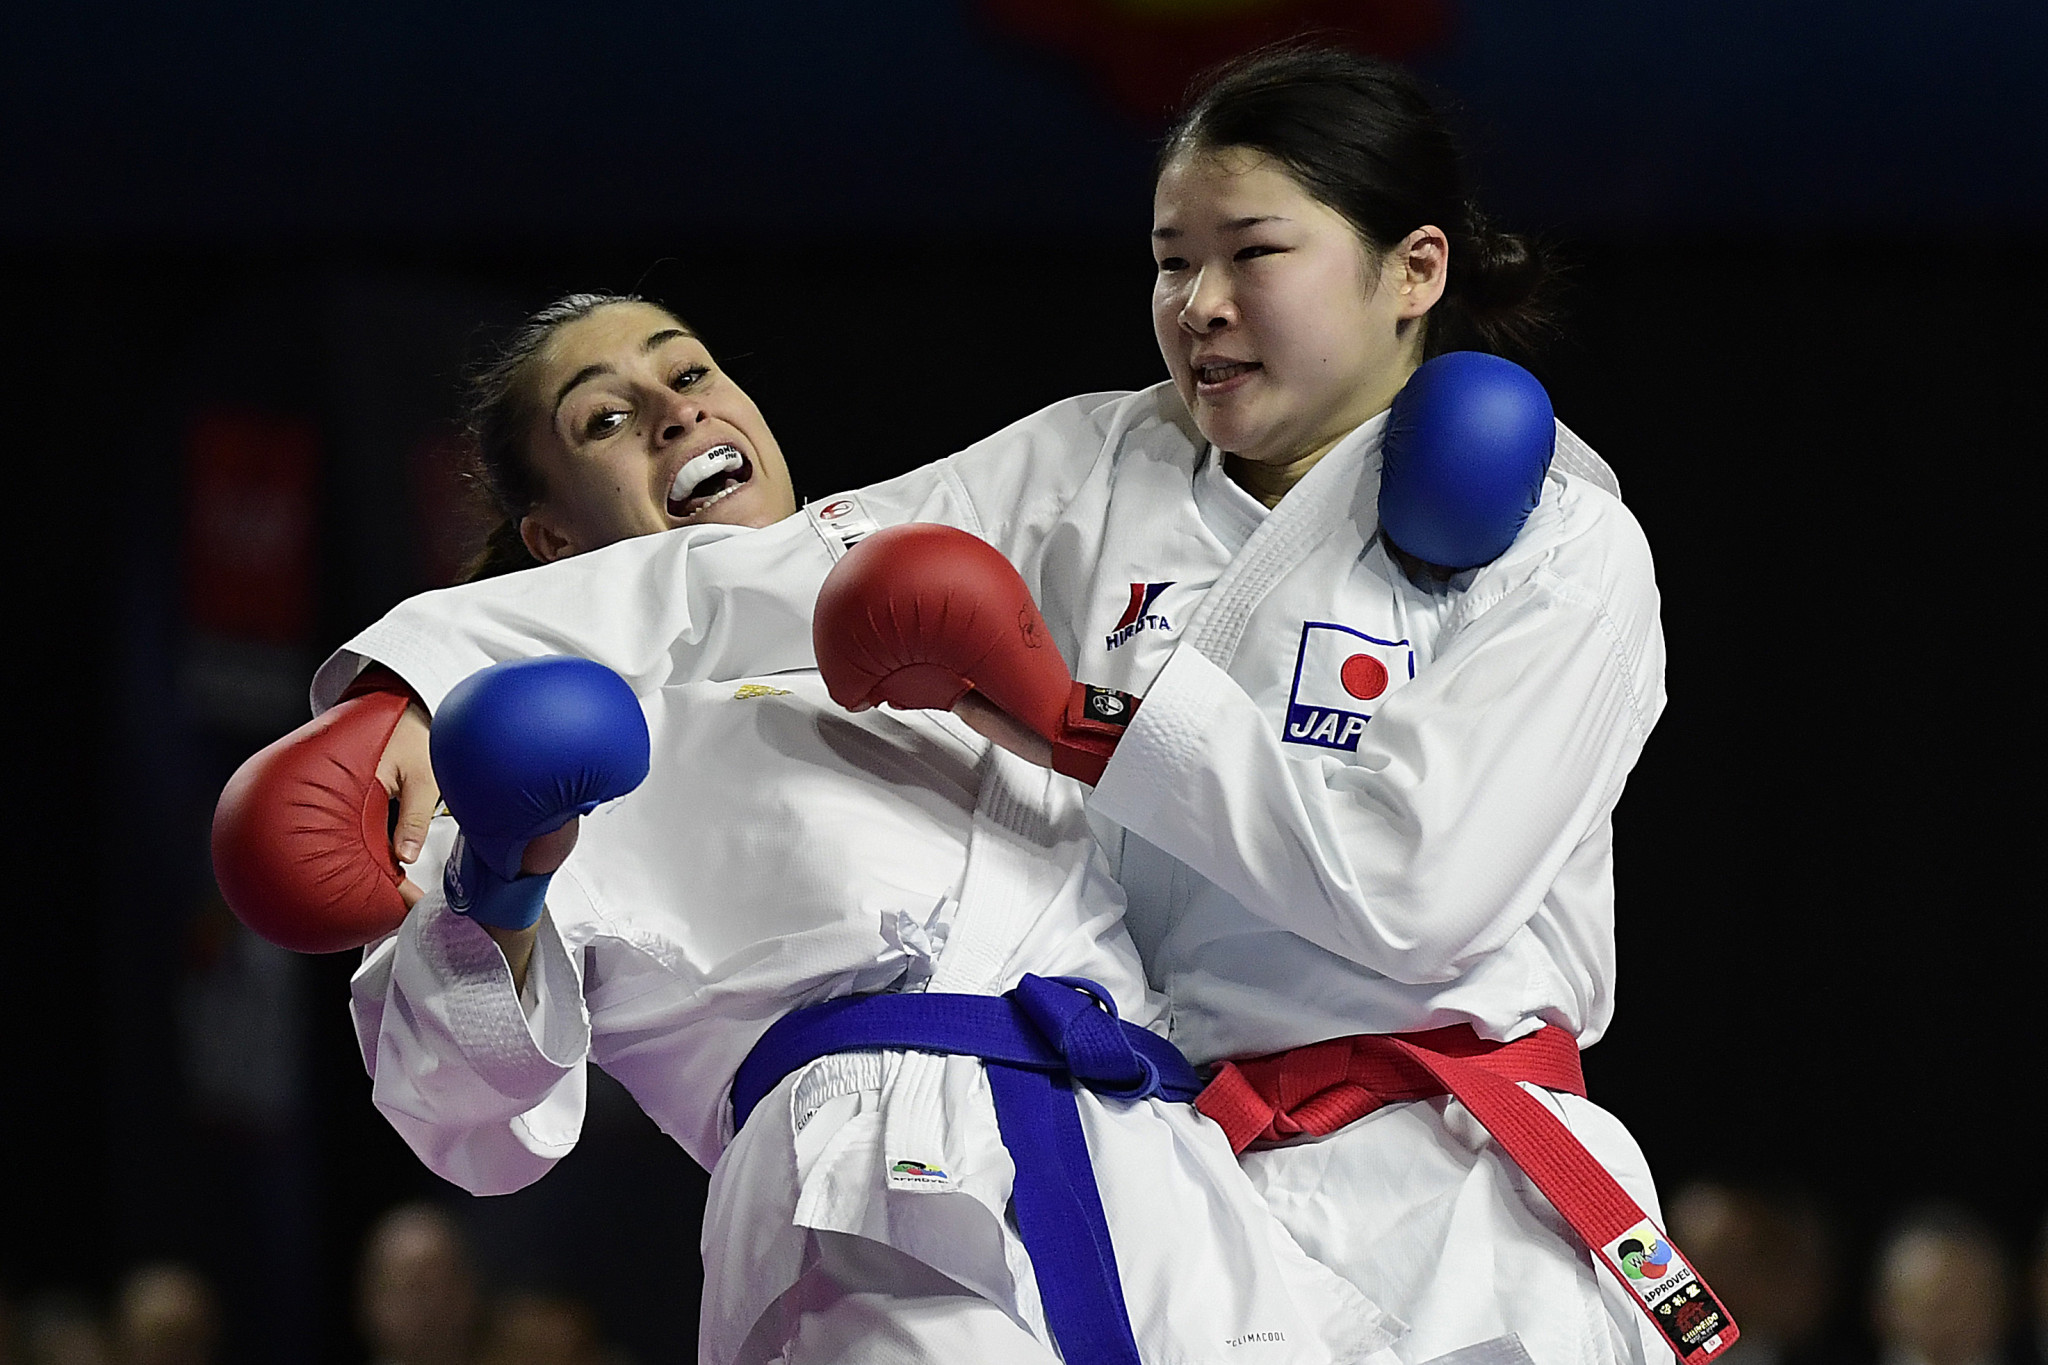 Japan dominate again with five golds at Karate 1-Series A in Santiago